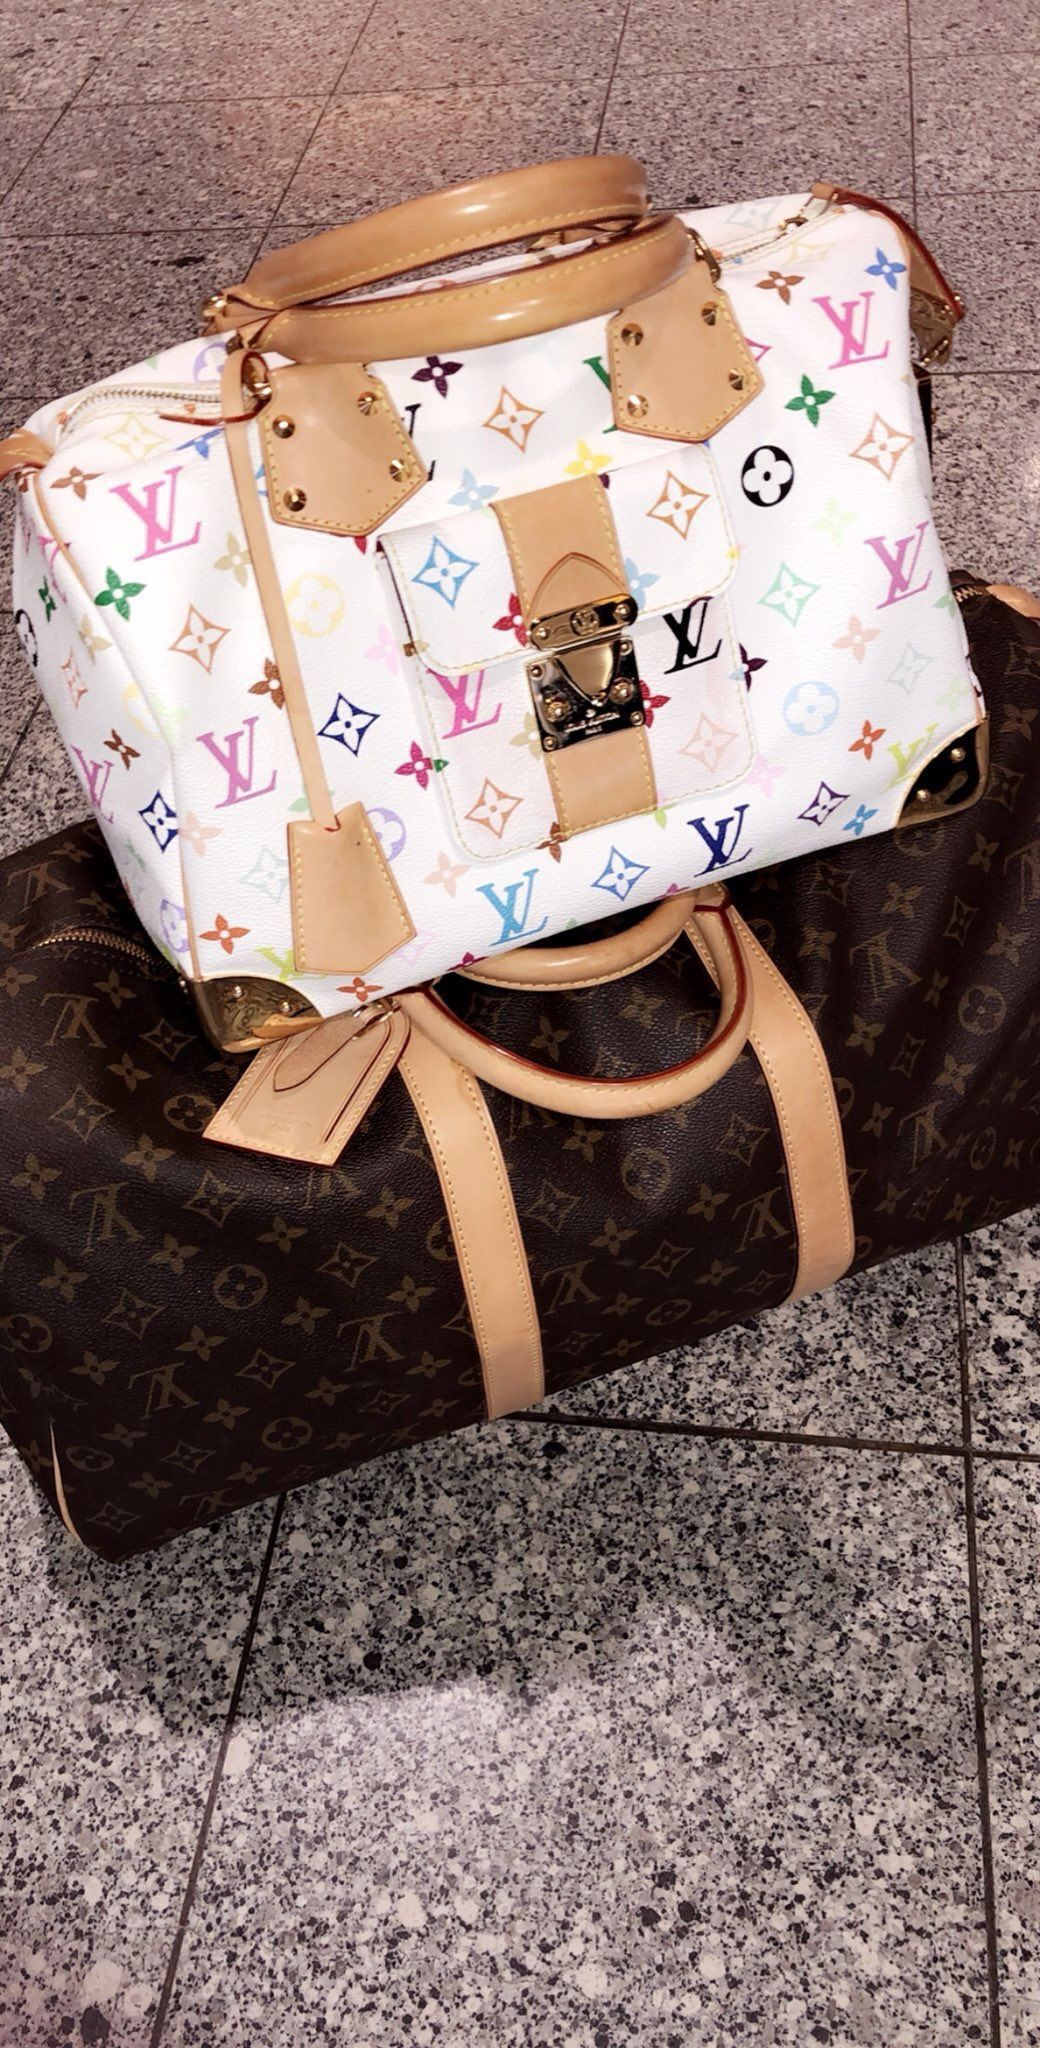 Pin by Michelle Matos on LUXURY BAGS in 2020 Louis